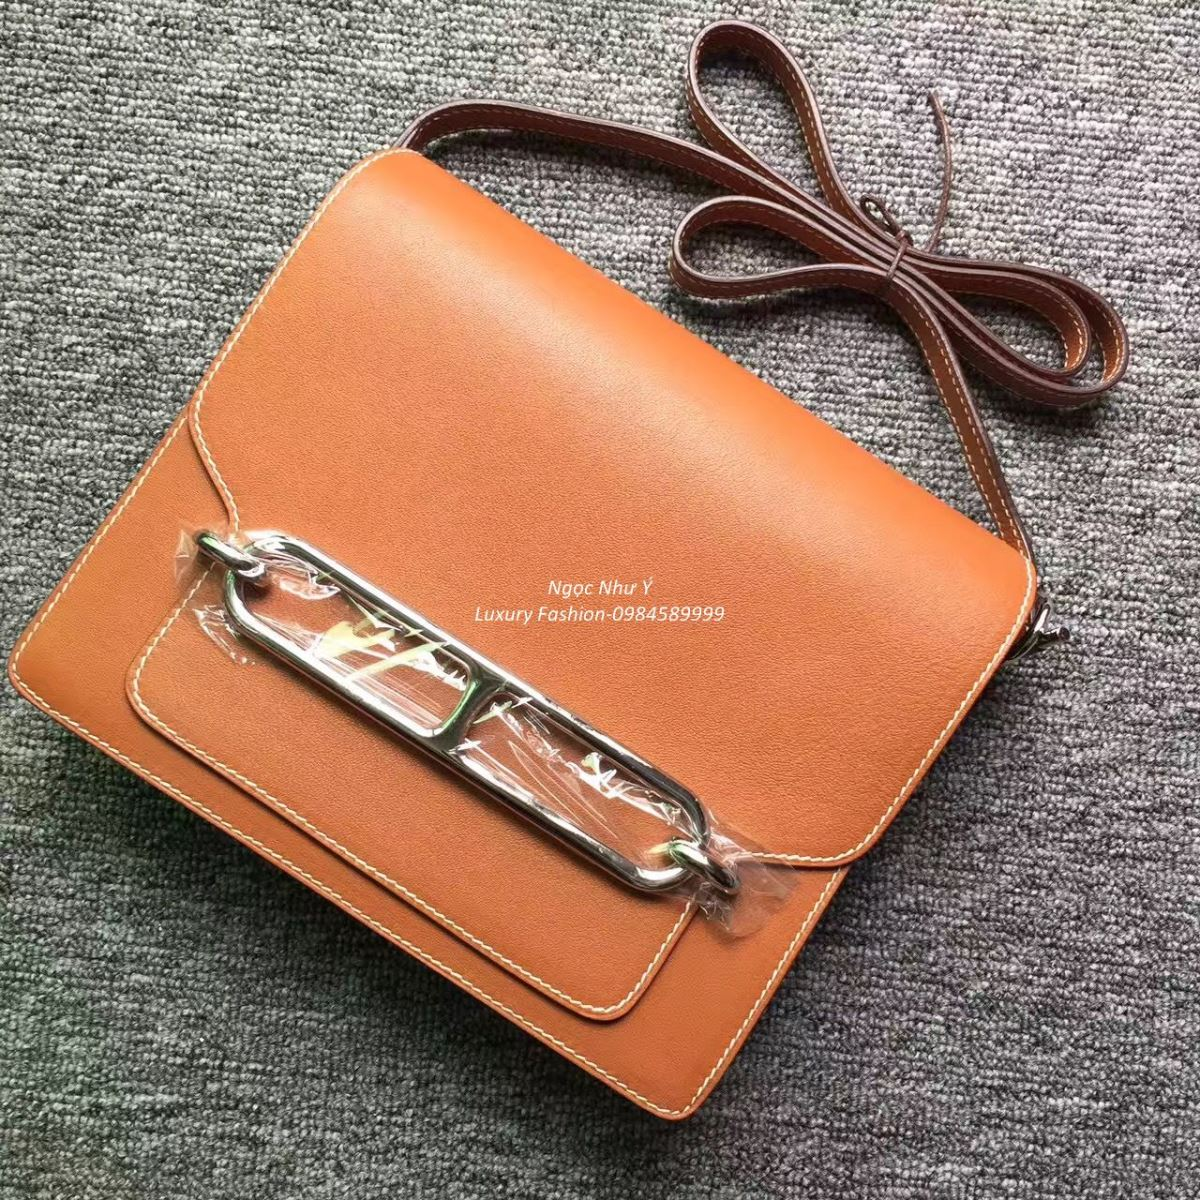 Túi Hermes Roulis 23 Swift màu Light Brown